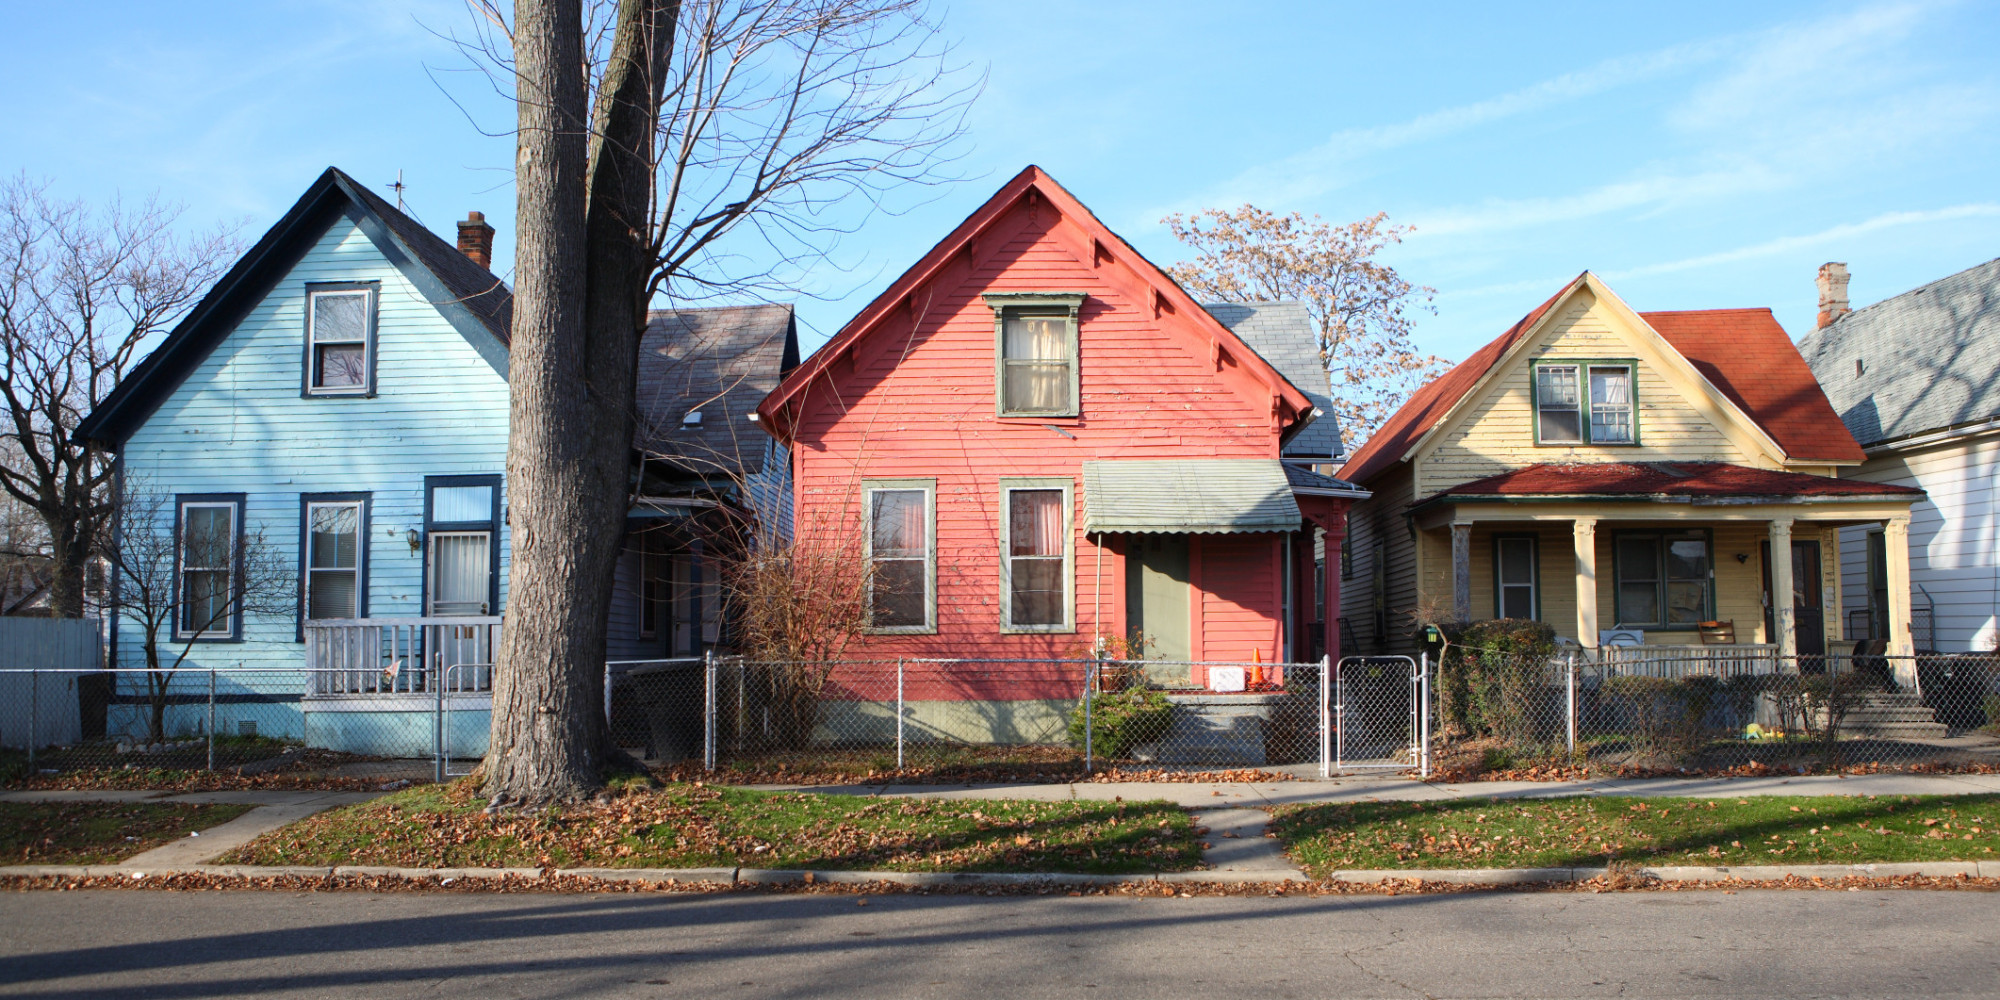 affordable housing in detroit michigan essay